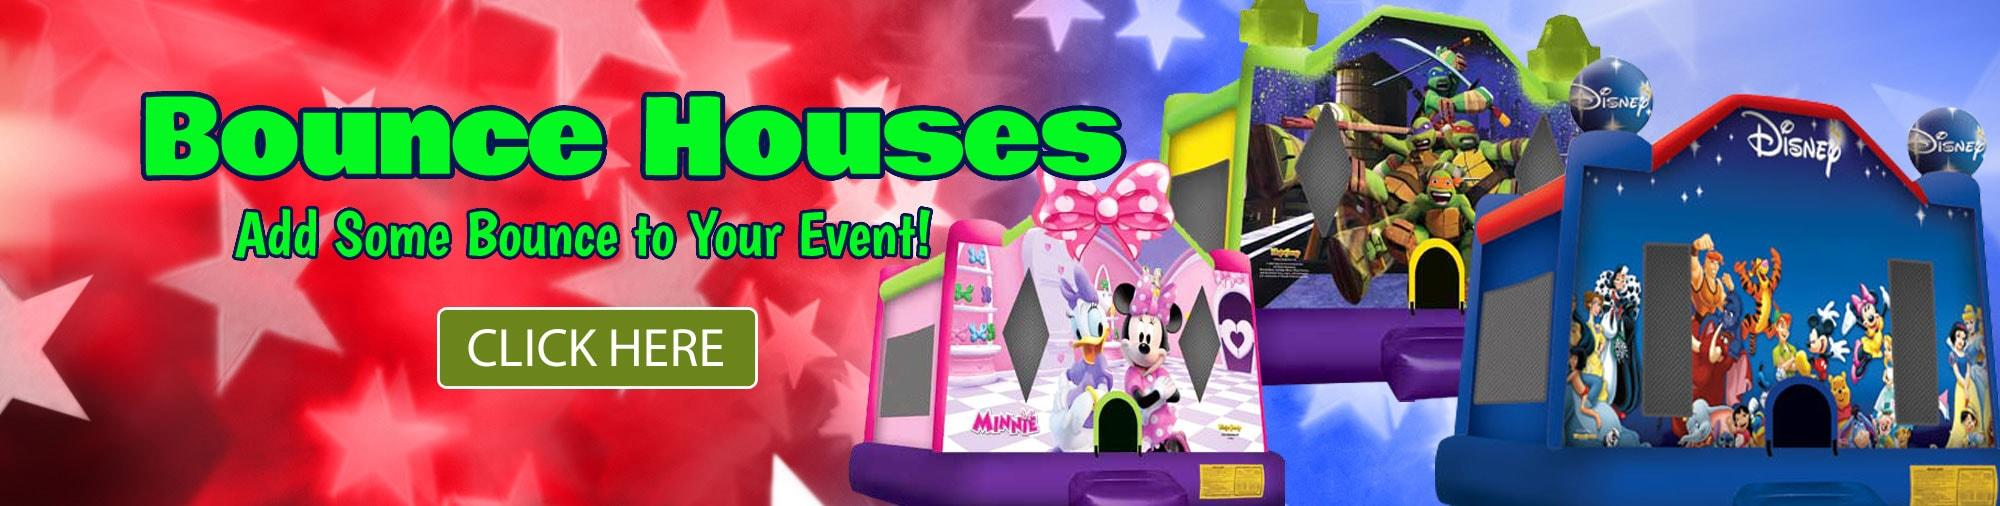 Tampa Bounce House Rentals